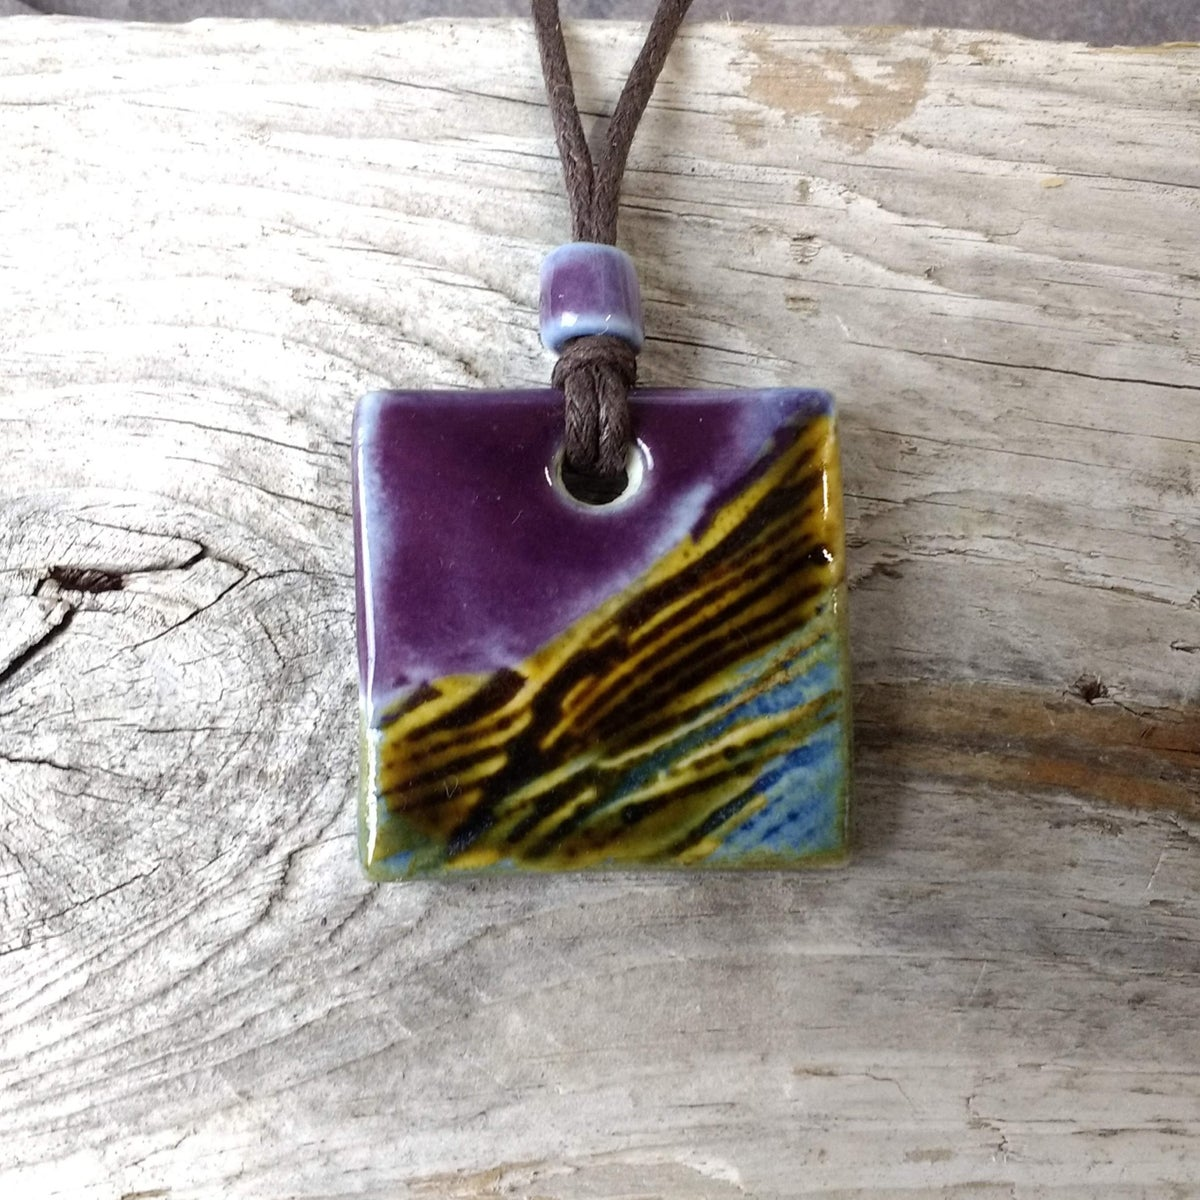 Craggy purple pendants